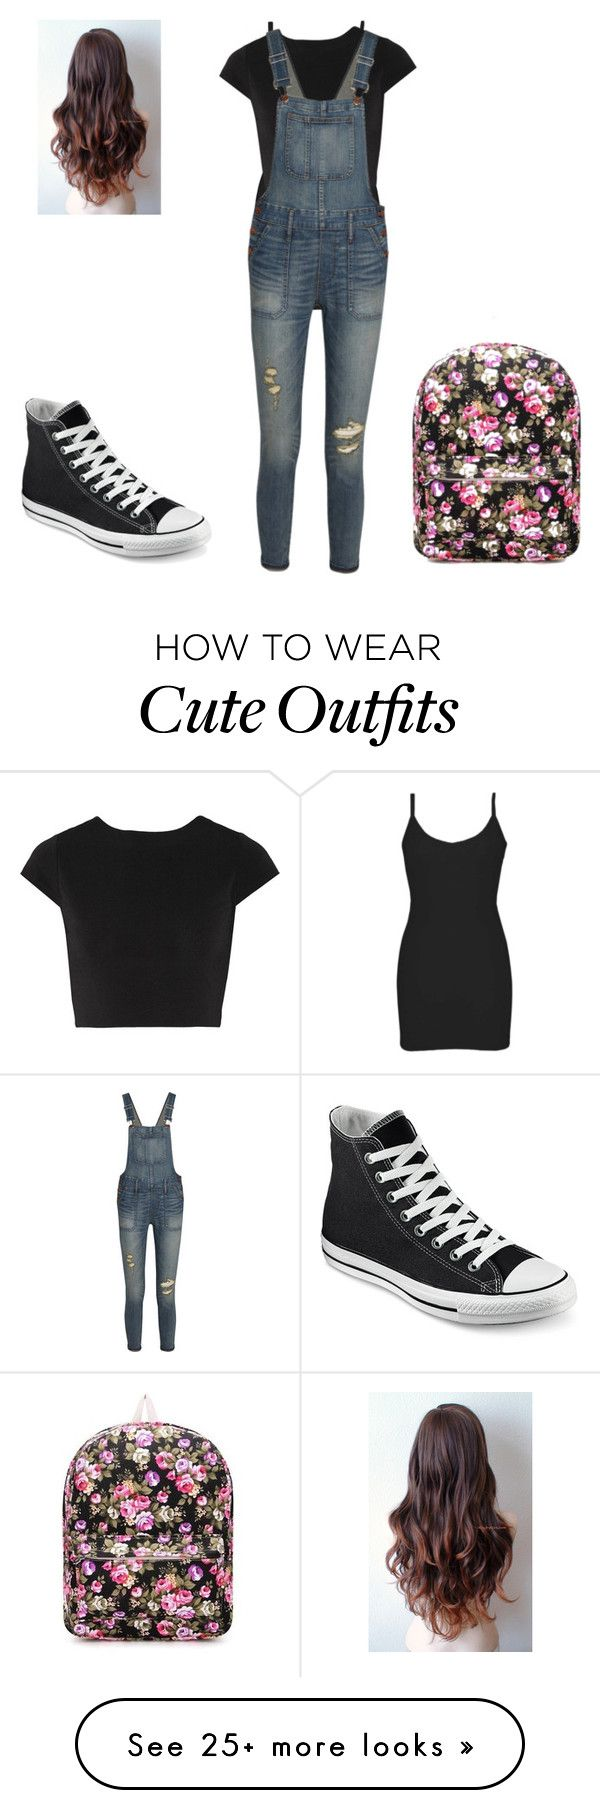 """""""My school outfit"""" by kayleighfawn on Polyvore featuring BKE core, Alice + Olivia, Madewell and Converse"""